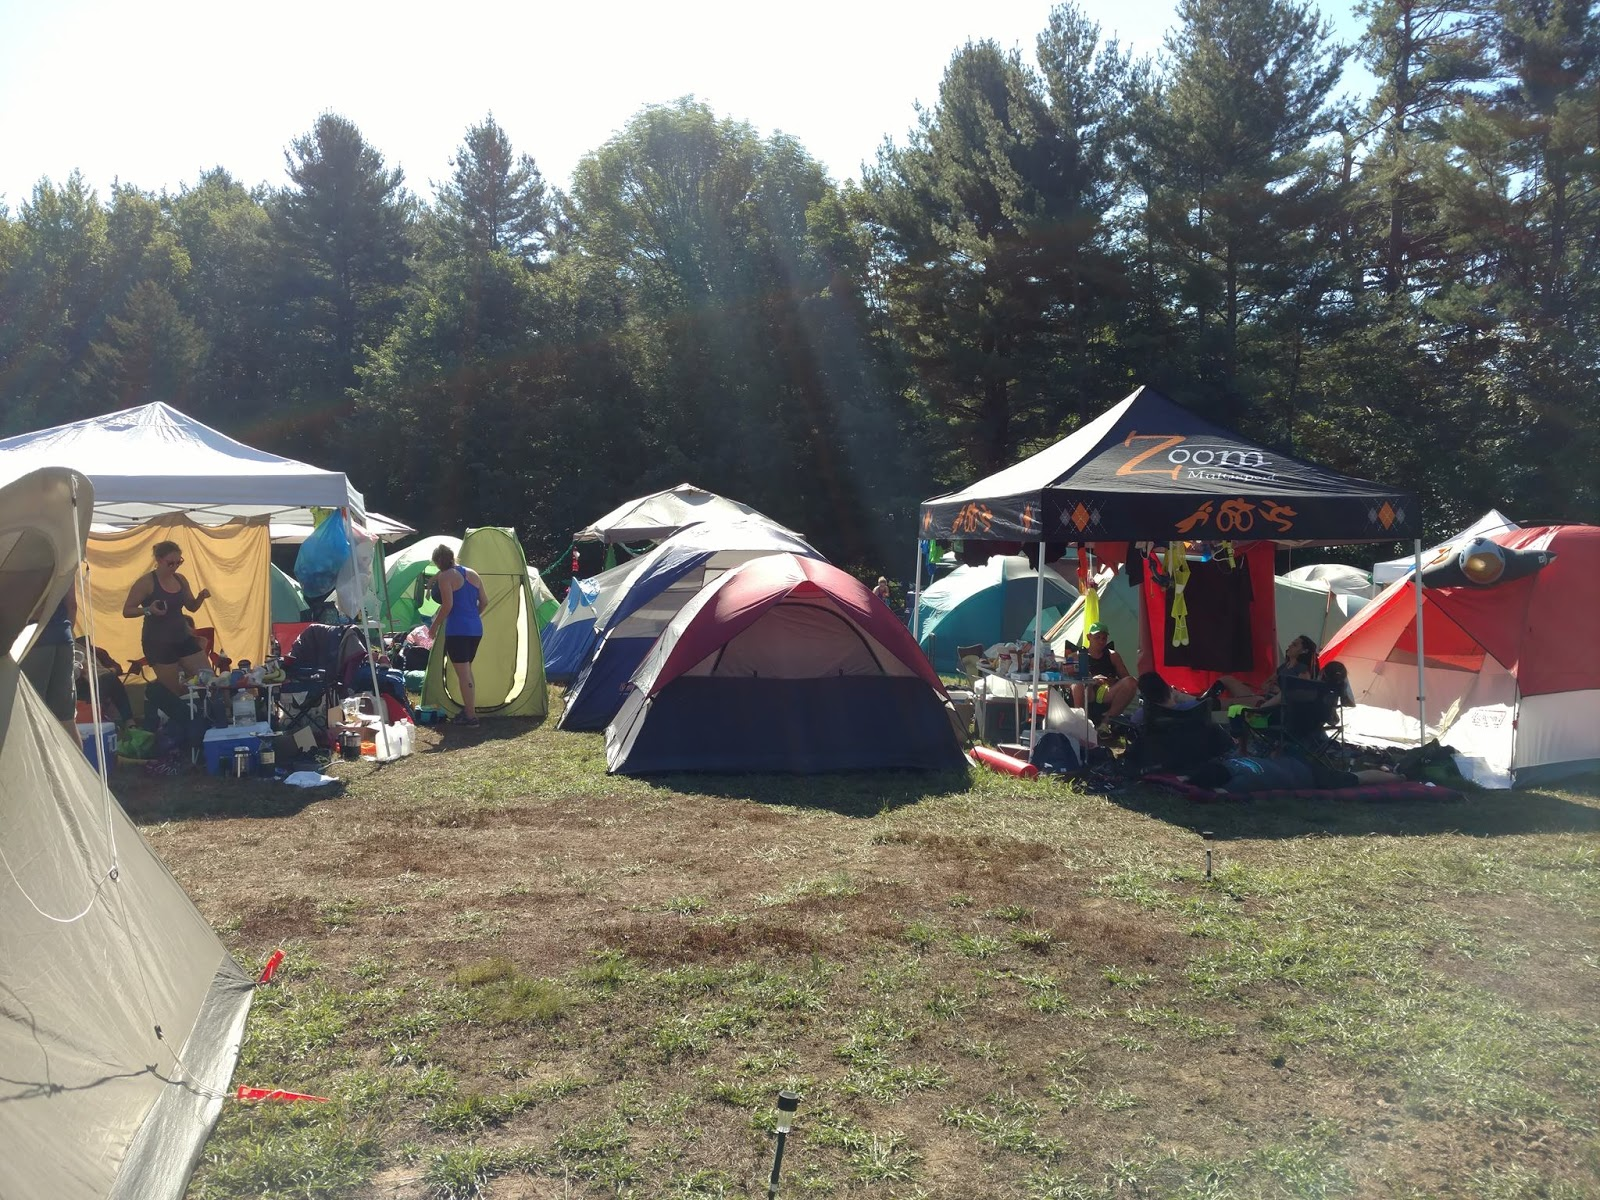 ... c&ing area up in the second field. The second field was located closer to the main festival area which meant a balance of better access to the ... & fill me with meaning: Ragnar Trail New England 2016